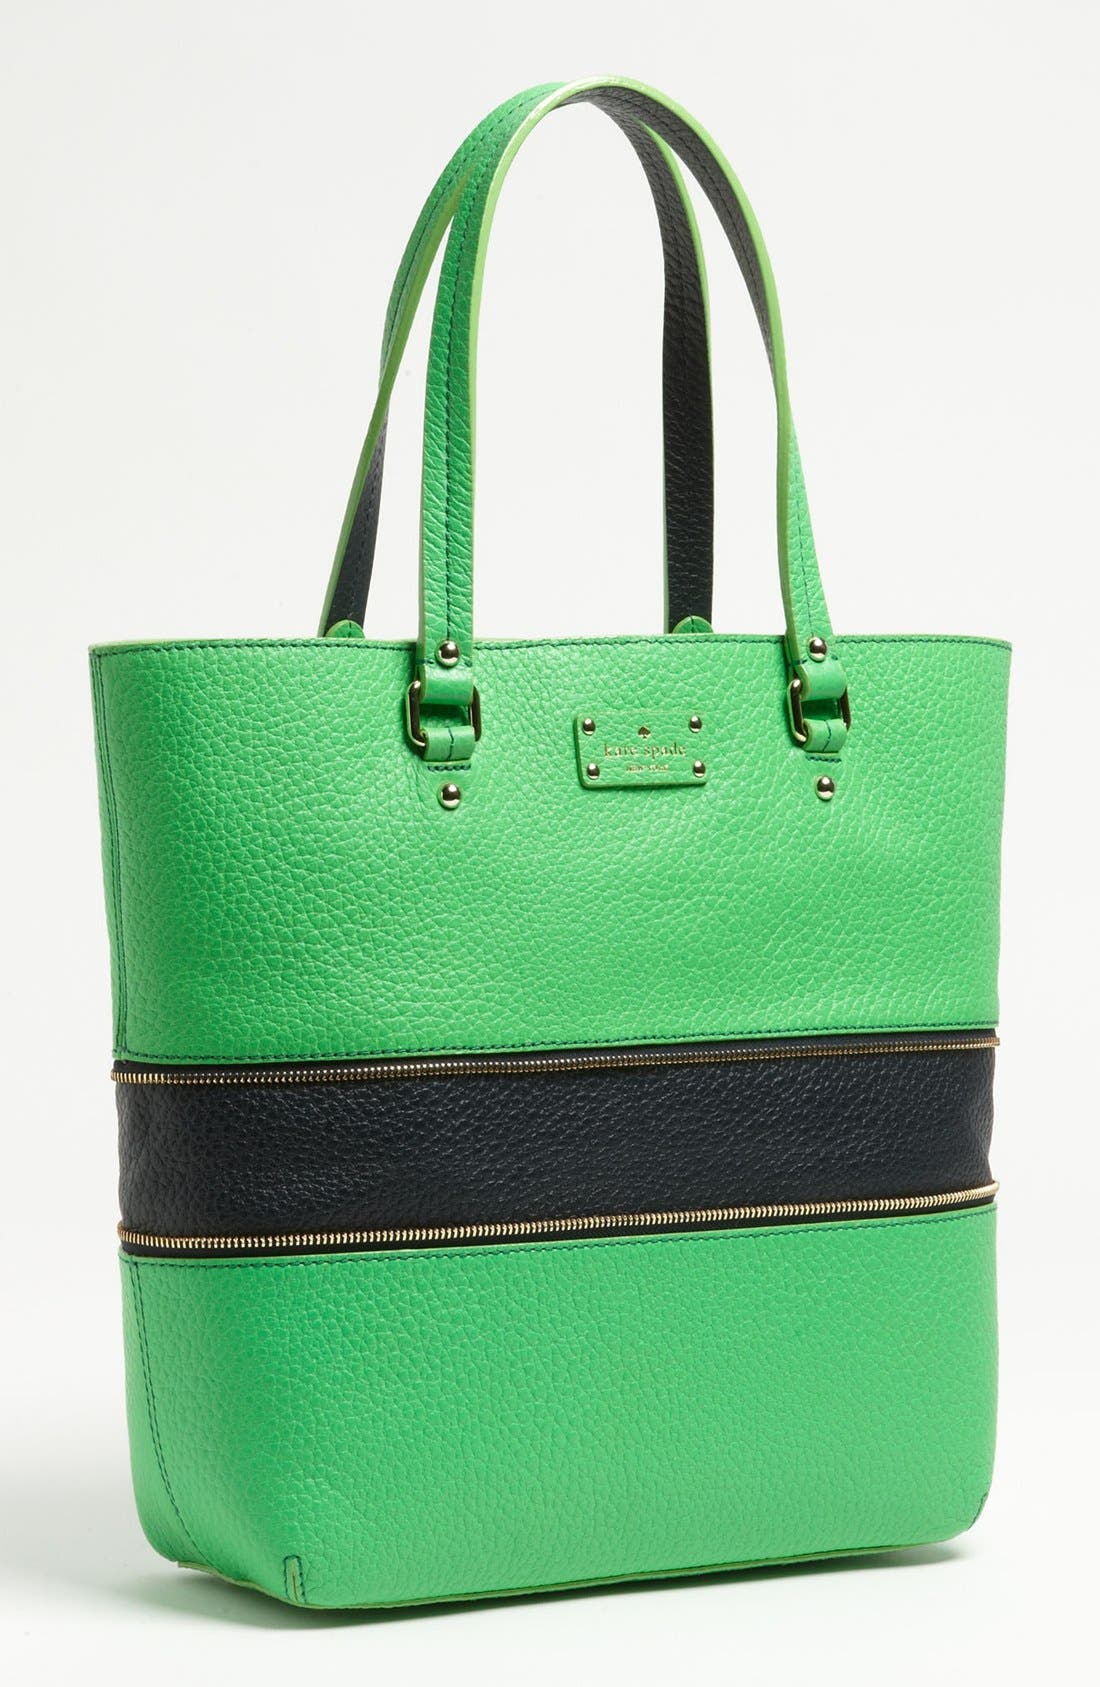 Main Image - kate spade new york 'grove court - michelle' tote